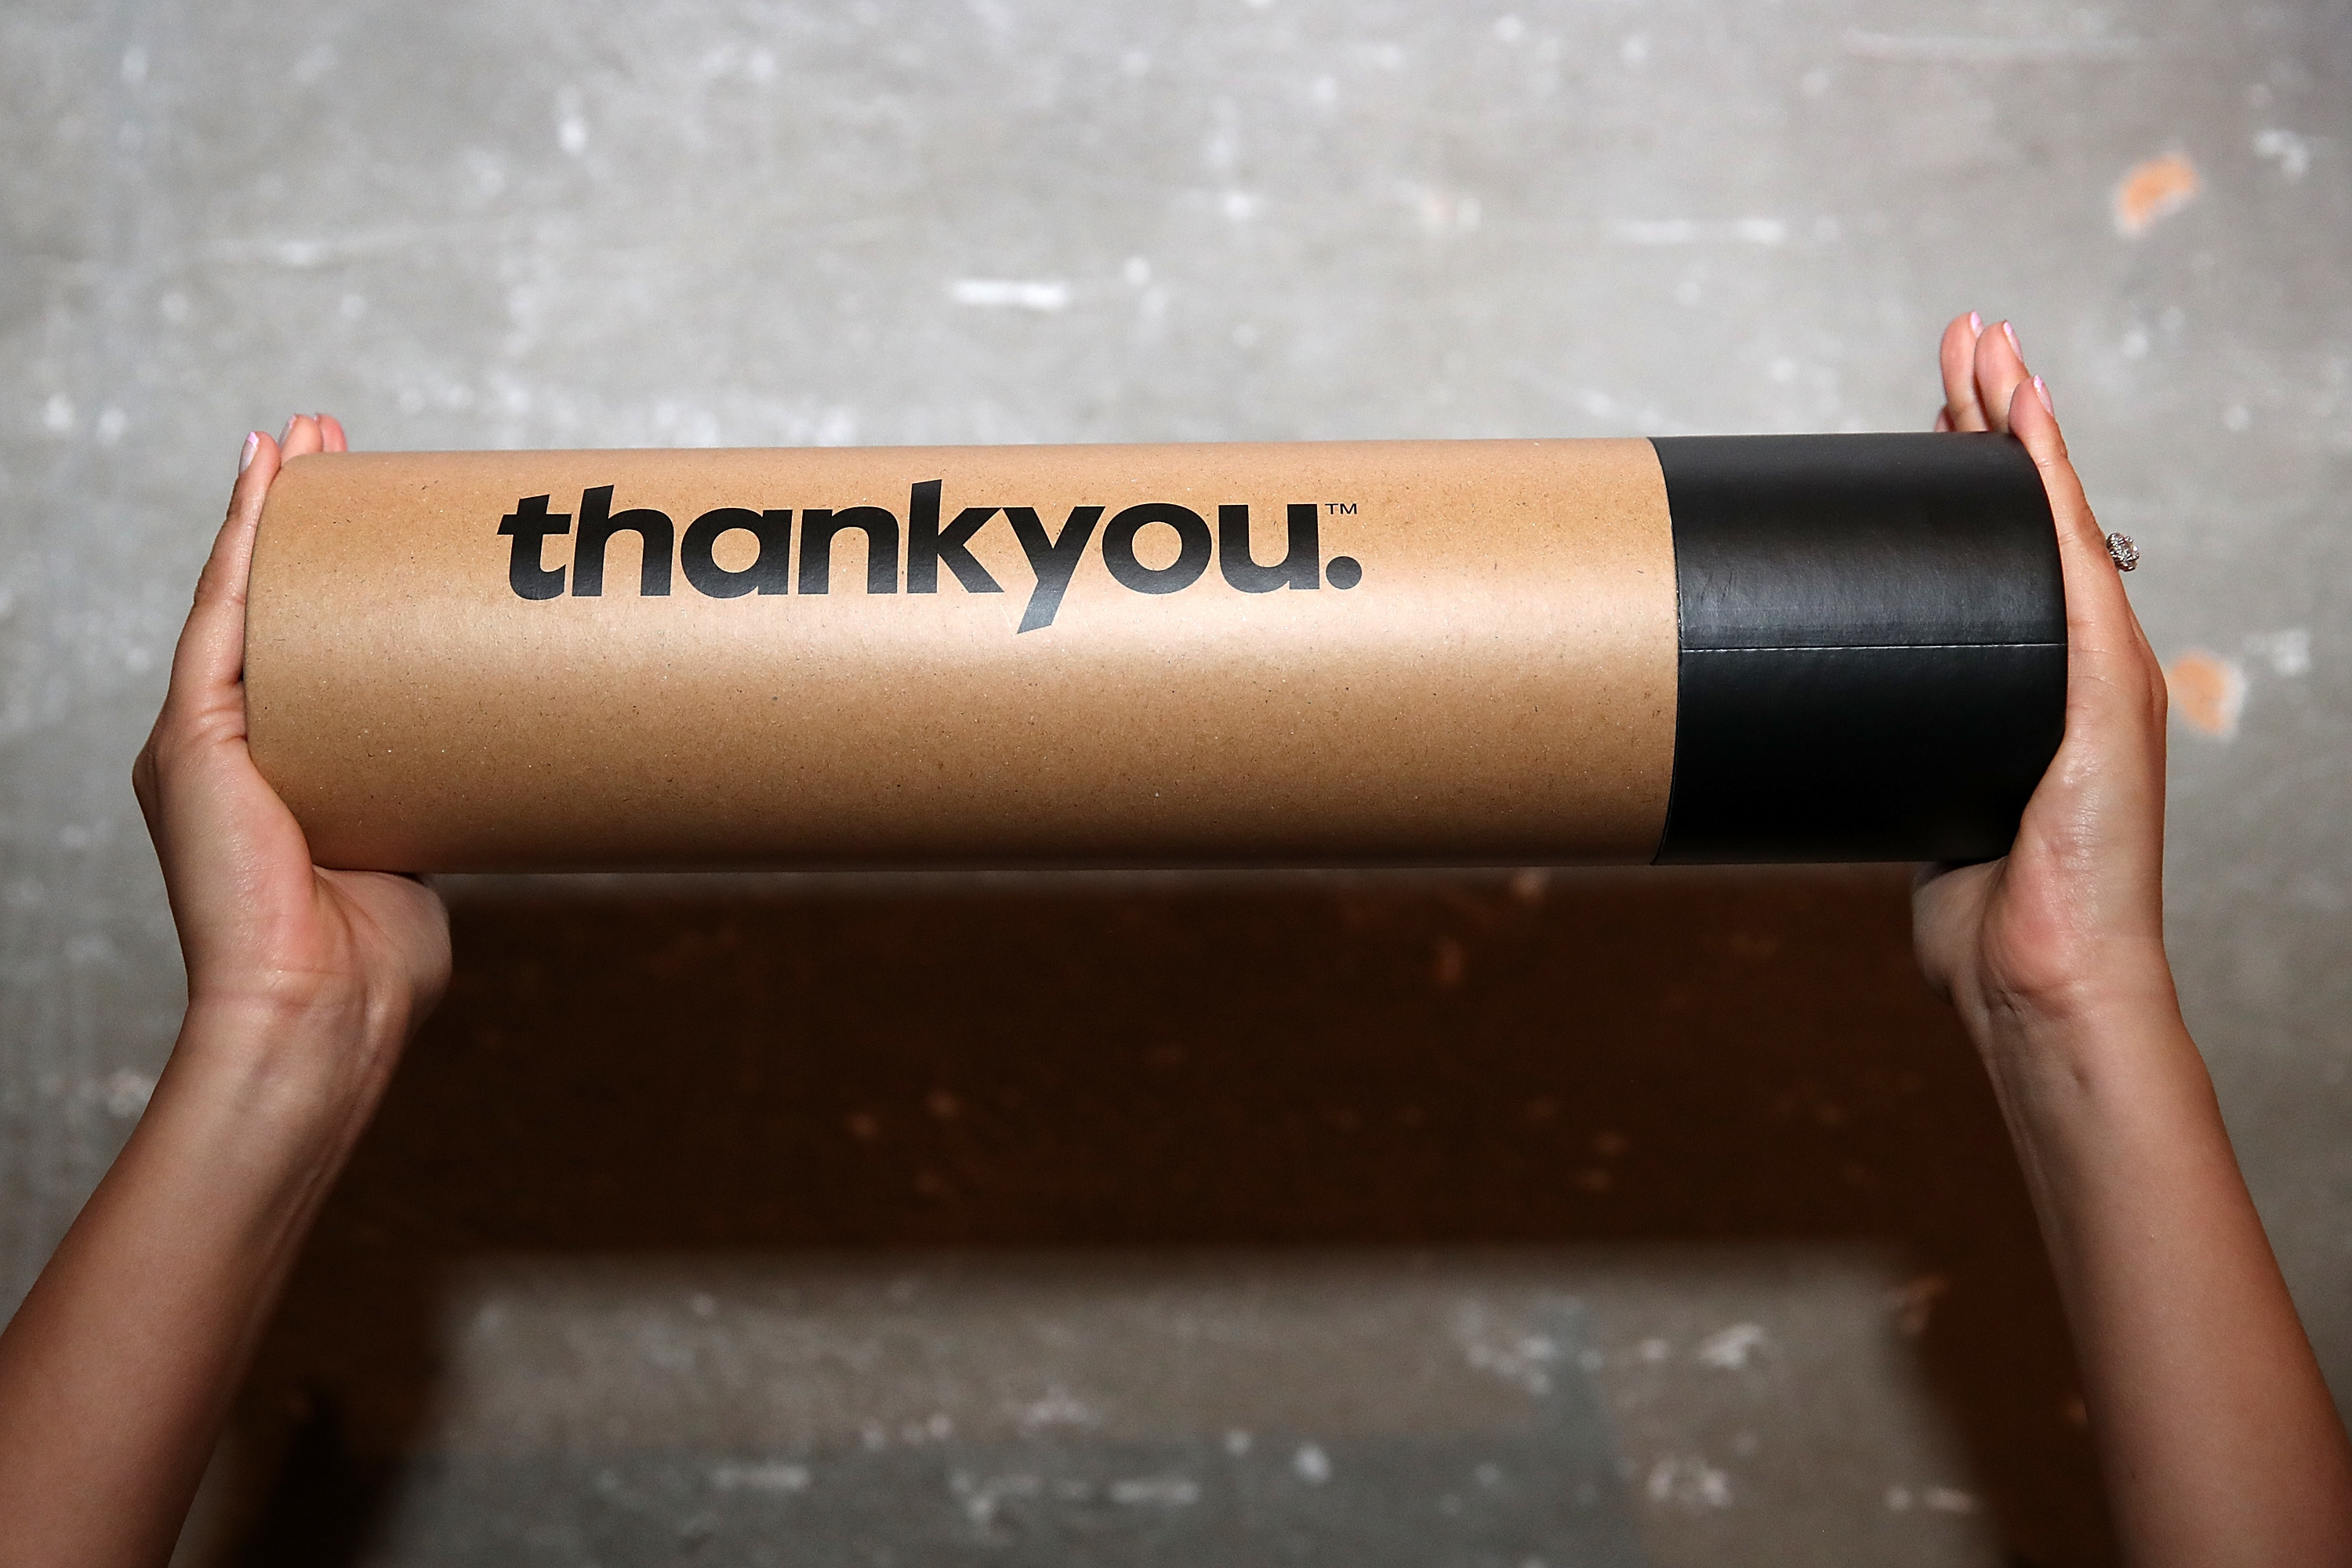 Thankyou-New-Zealand-Baton.JPG#asset:3827